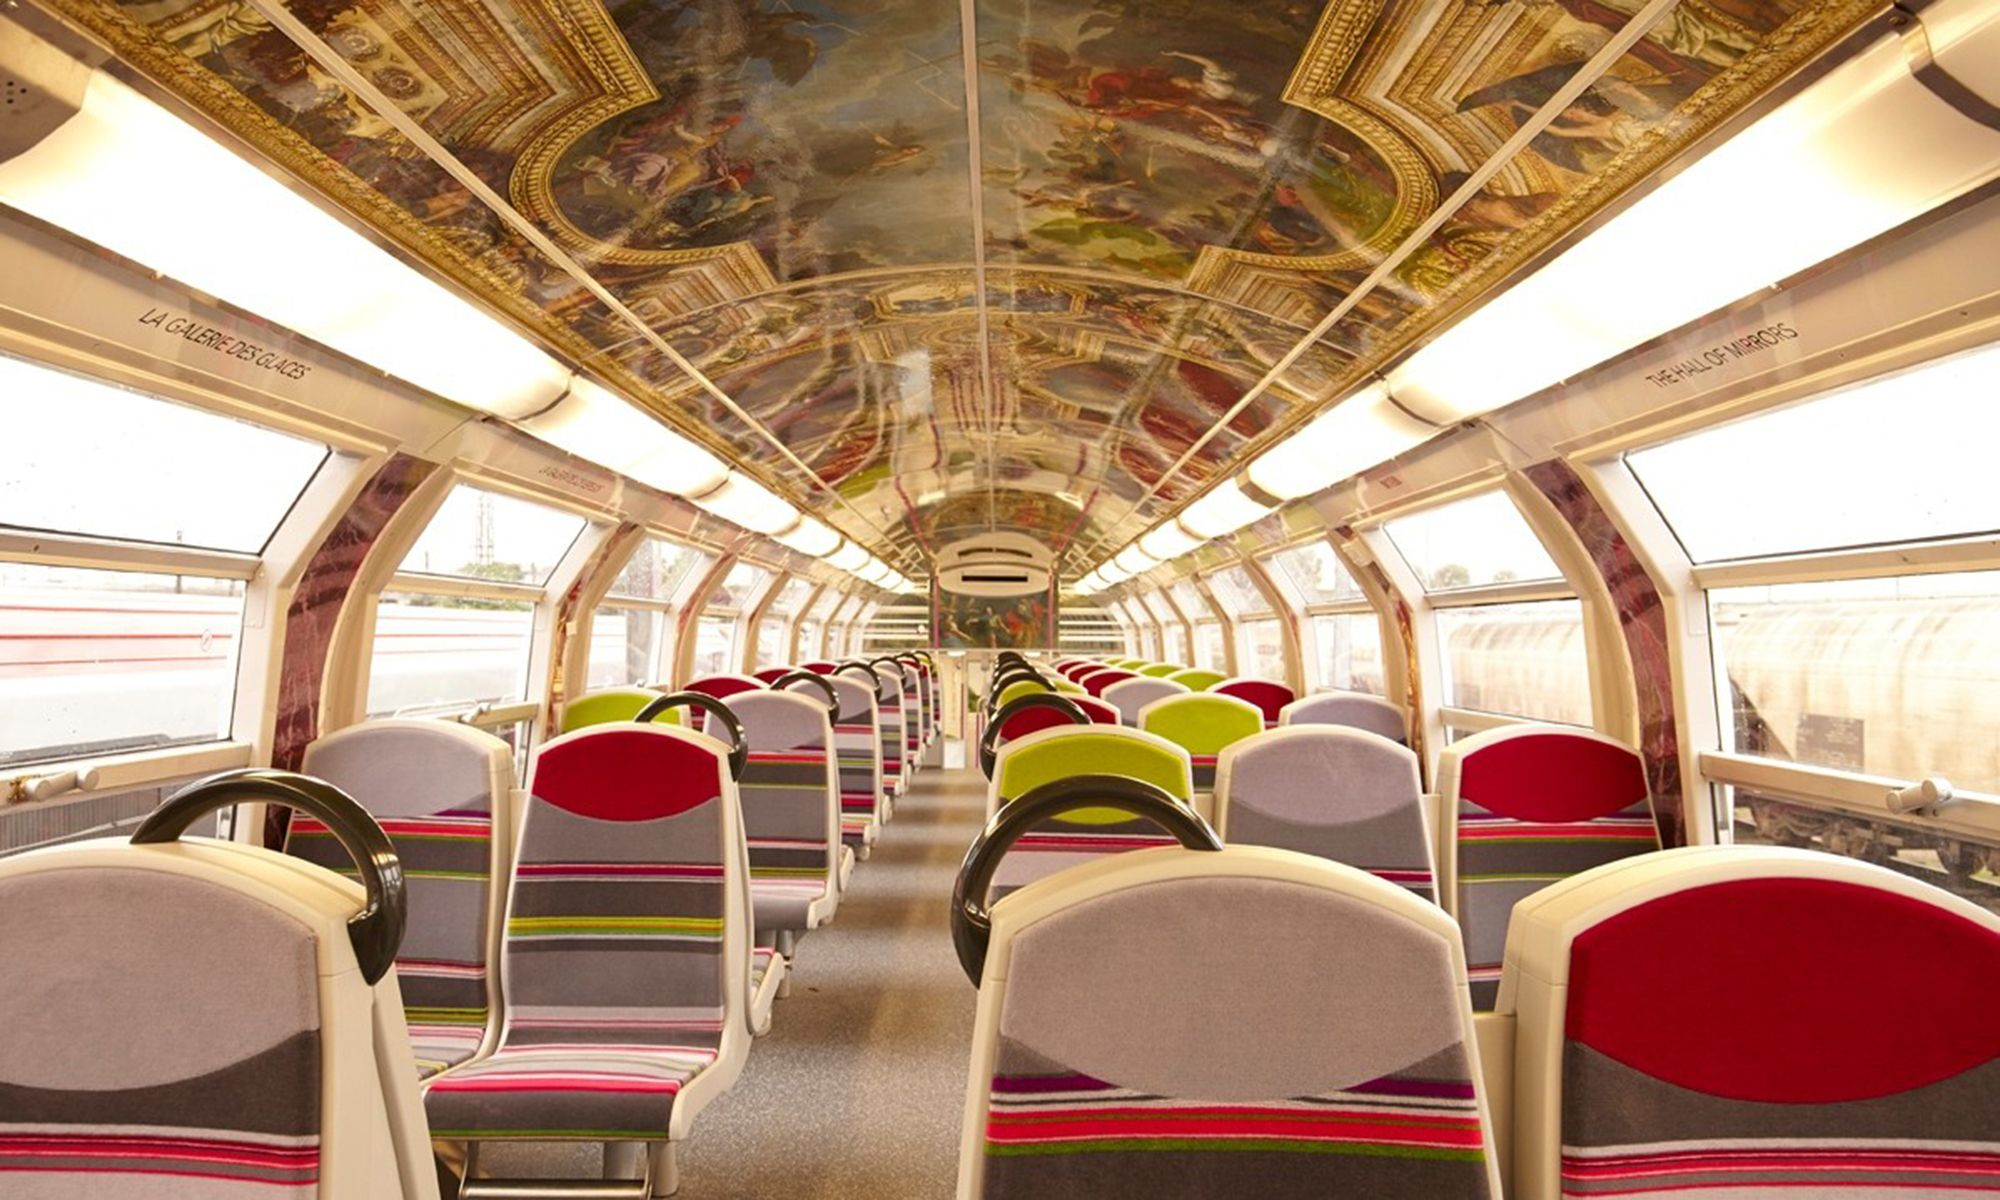 French Trains Renovated to Resemble Palace of Versailles